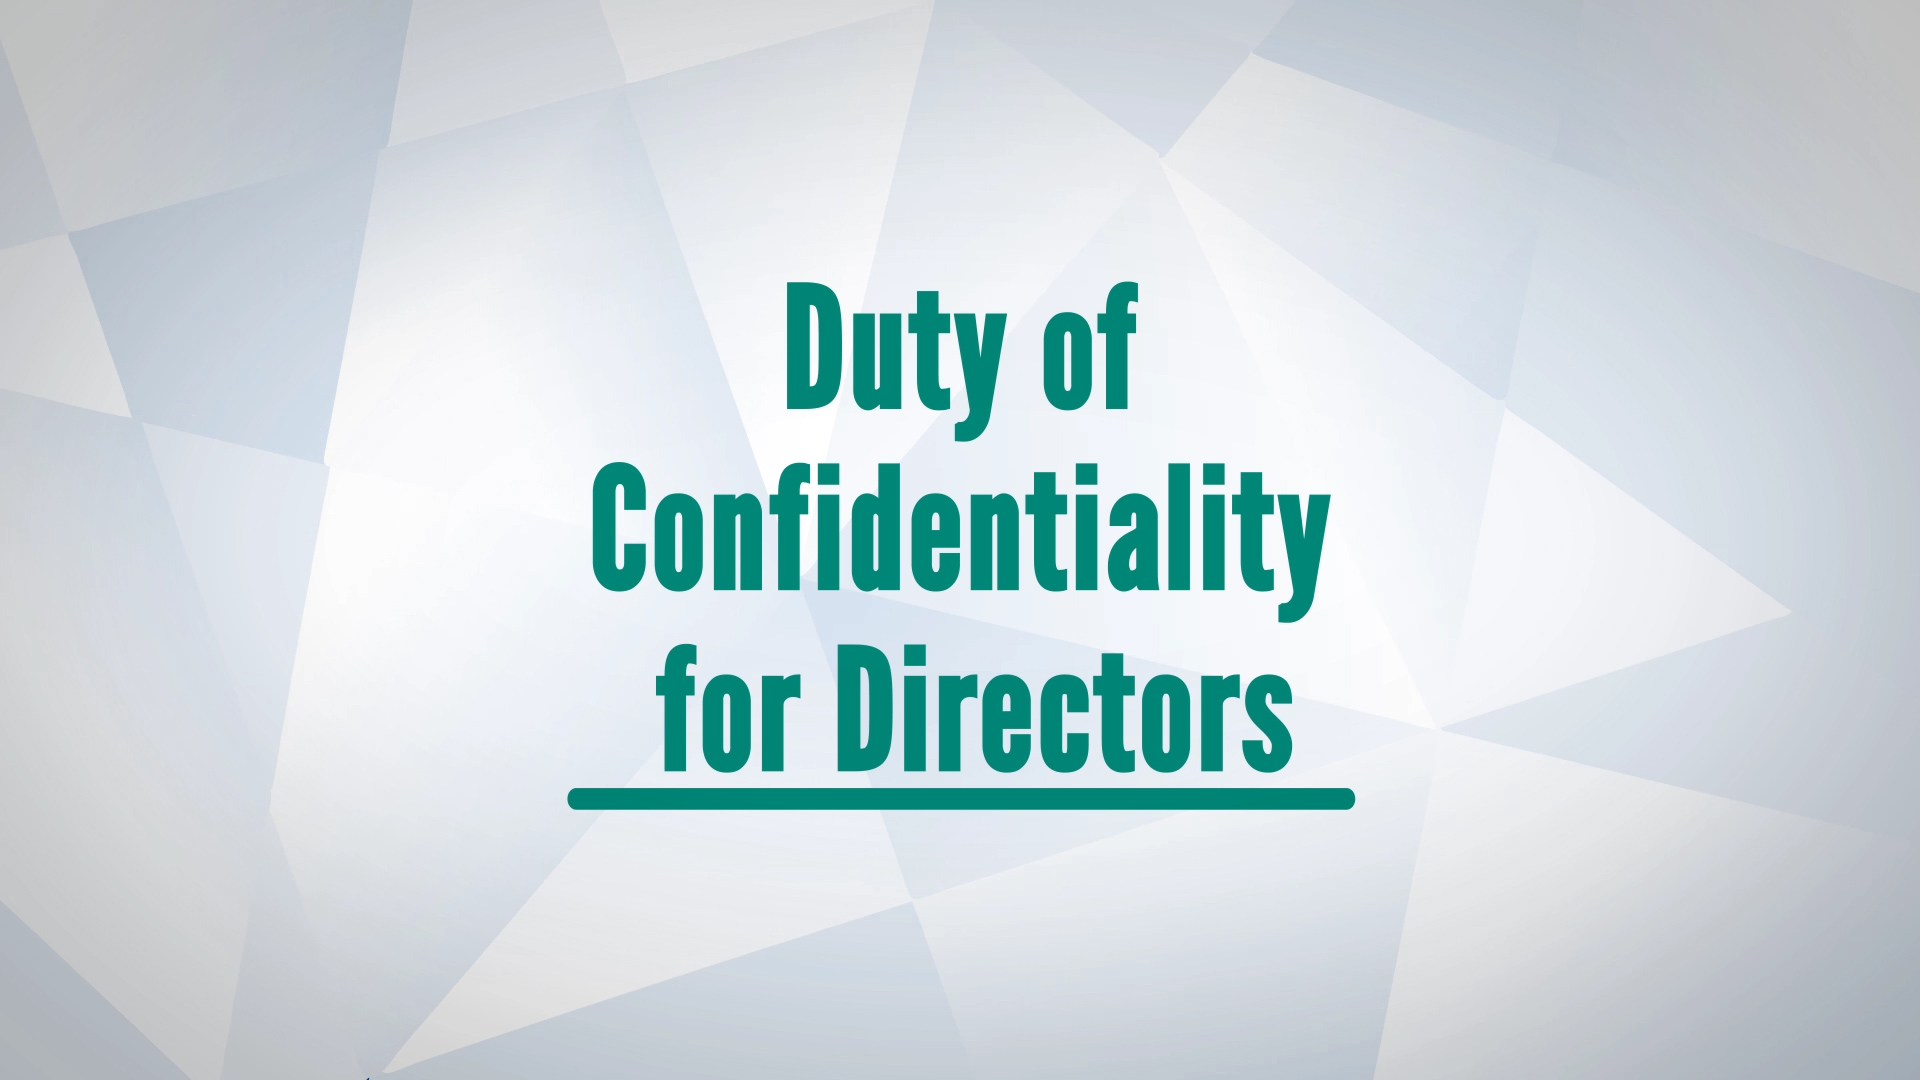 Duty of Confidentiality Video Thumbnail